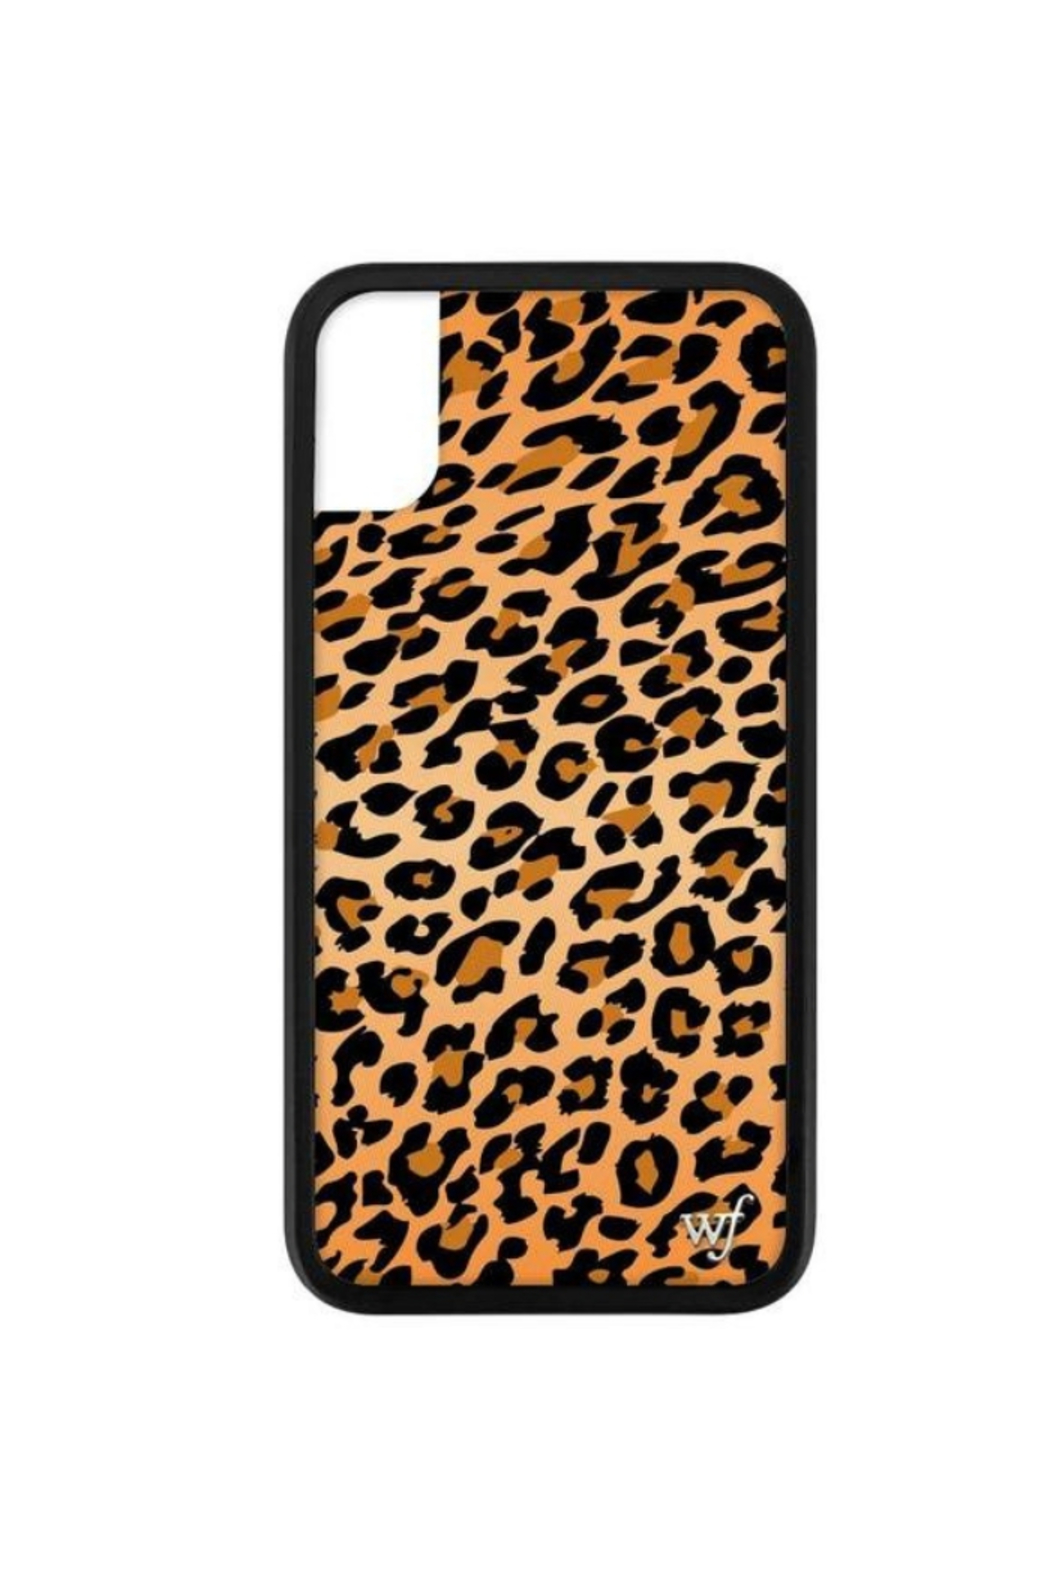 Wildflower Cases Leopard iPhone Xr Case - Main Image